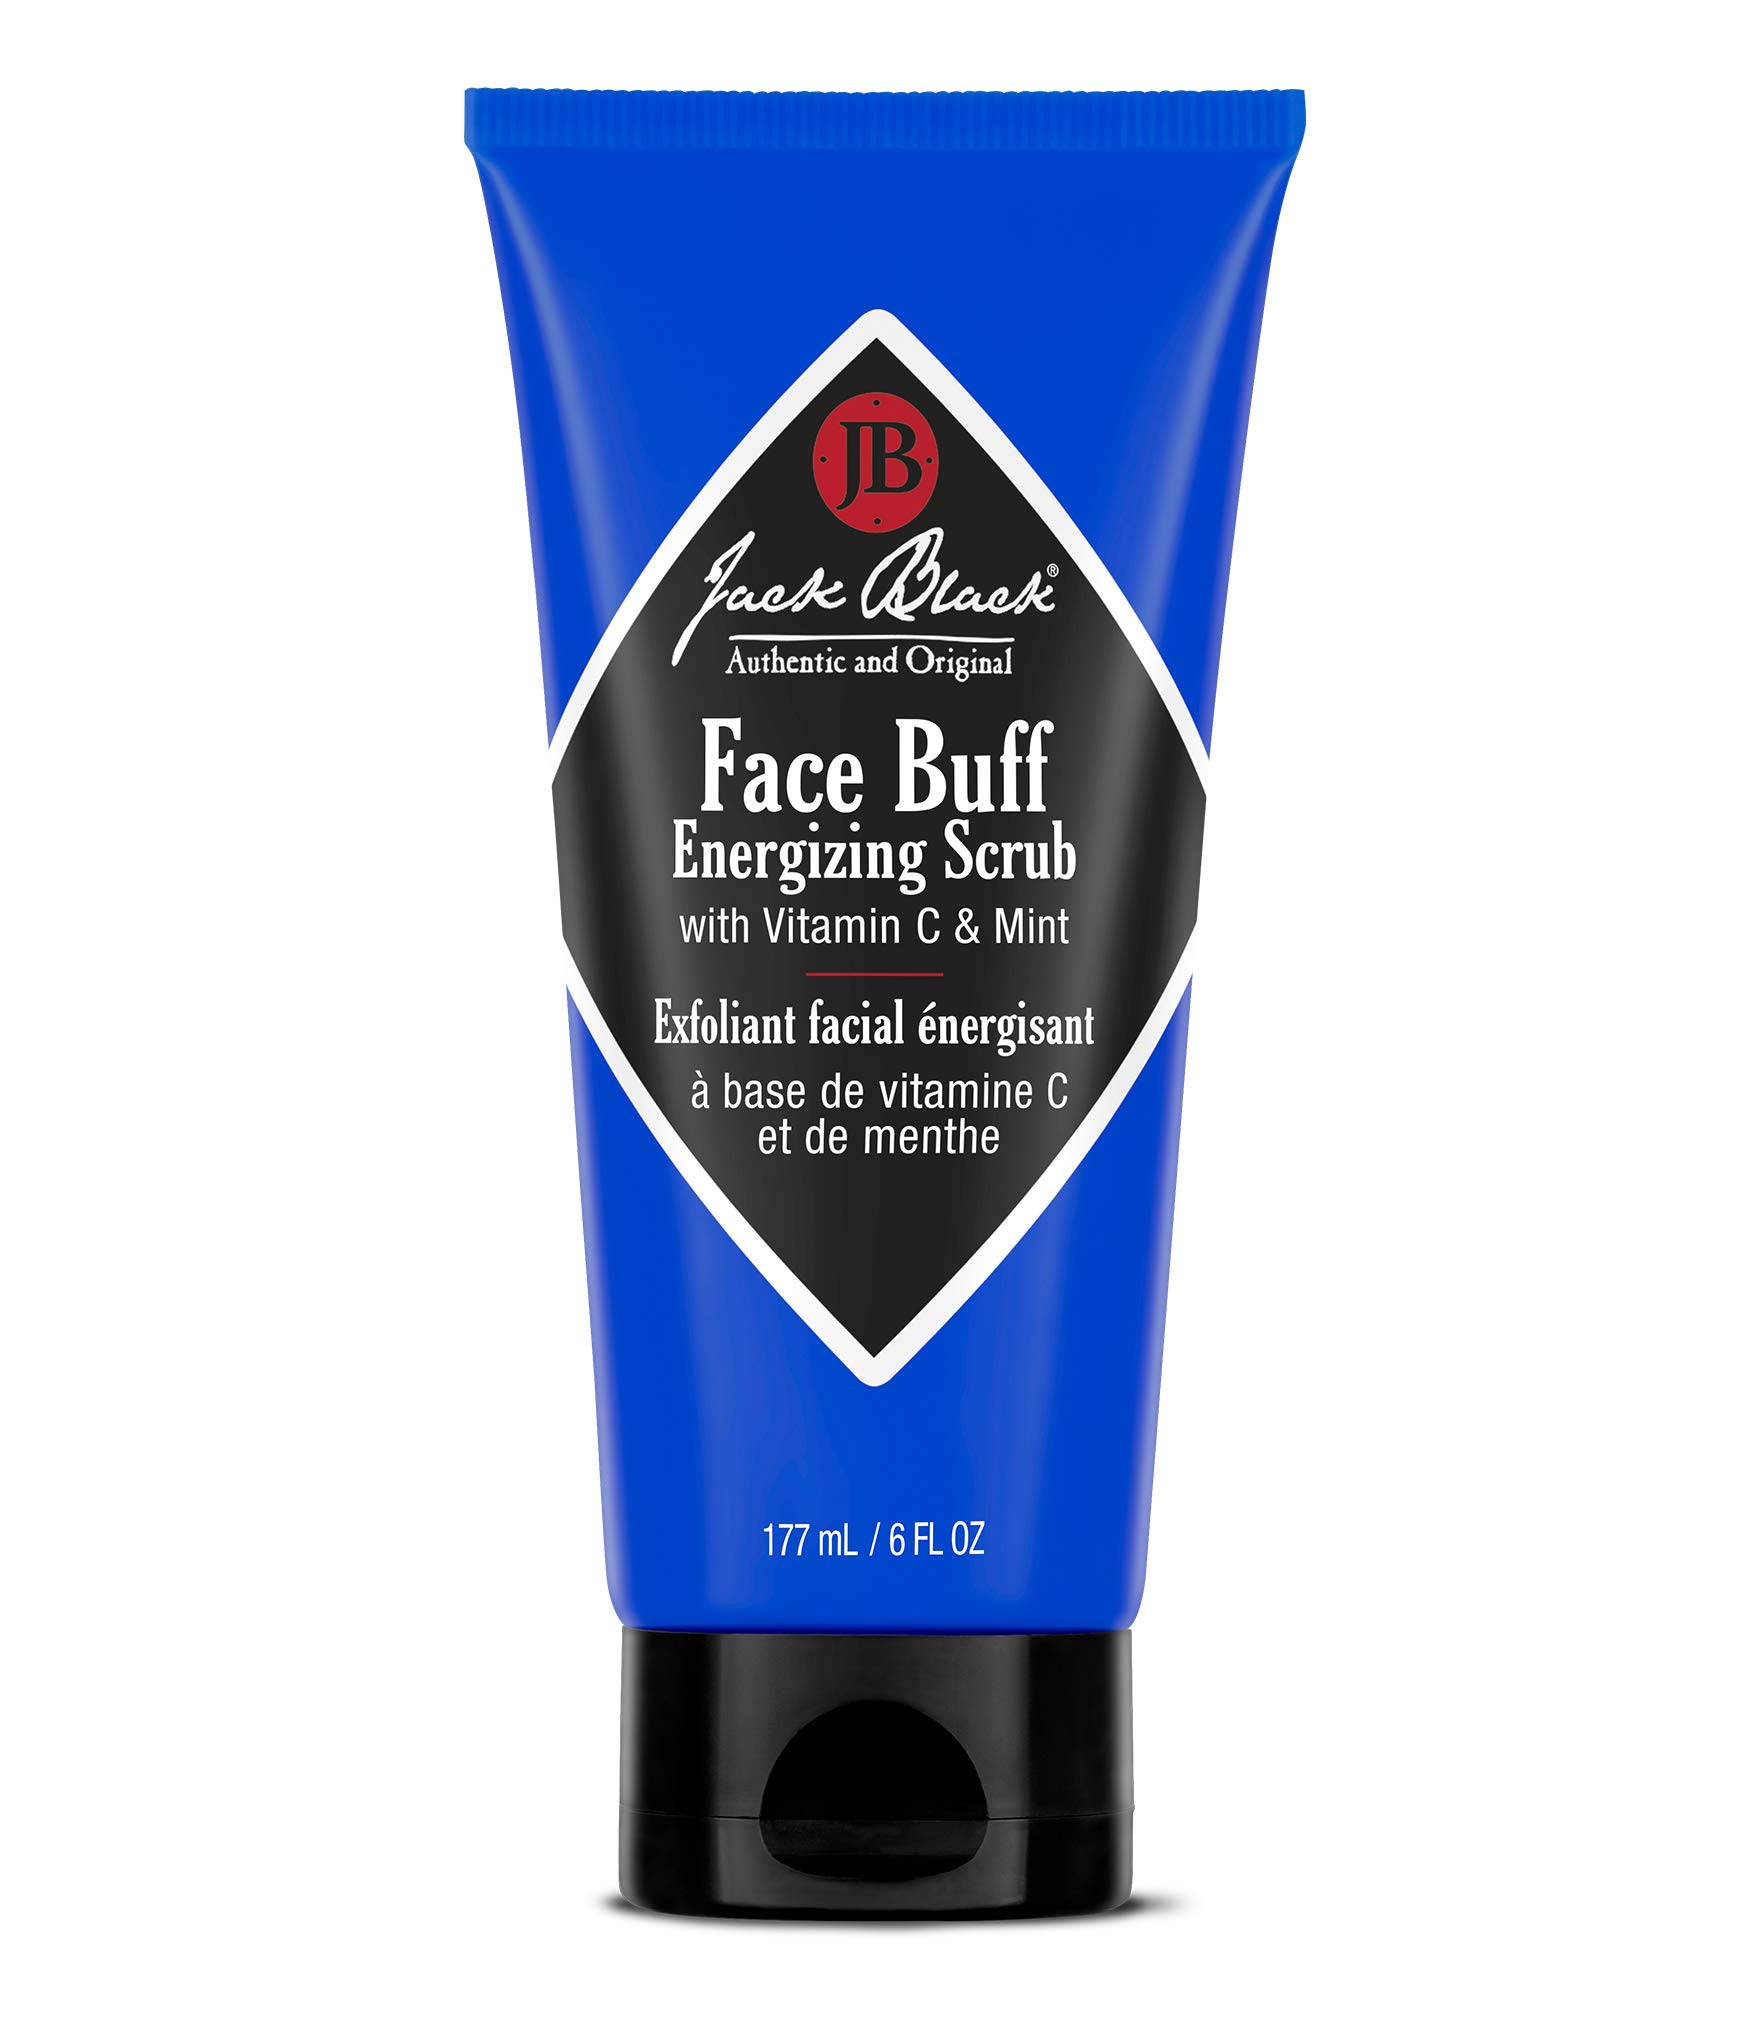 JACK BLACK - Face Buff Energizing Scrub - Deep-Cleaning Pre-shave Cleanser and Scrub, Reduces Ingrown Hairs, Exfoliates Skin, Removes Oil, Dirt, and Dead Skin Cells,6 oz. by Jack Black